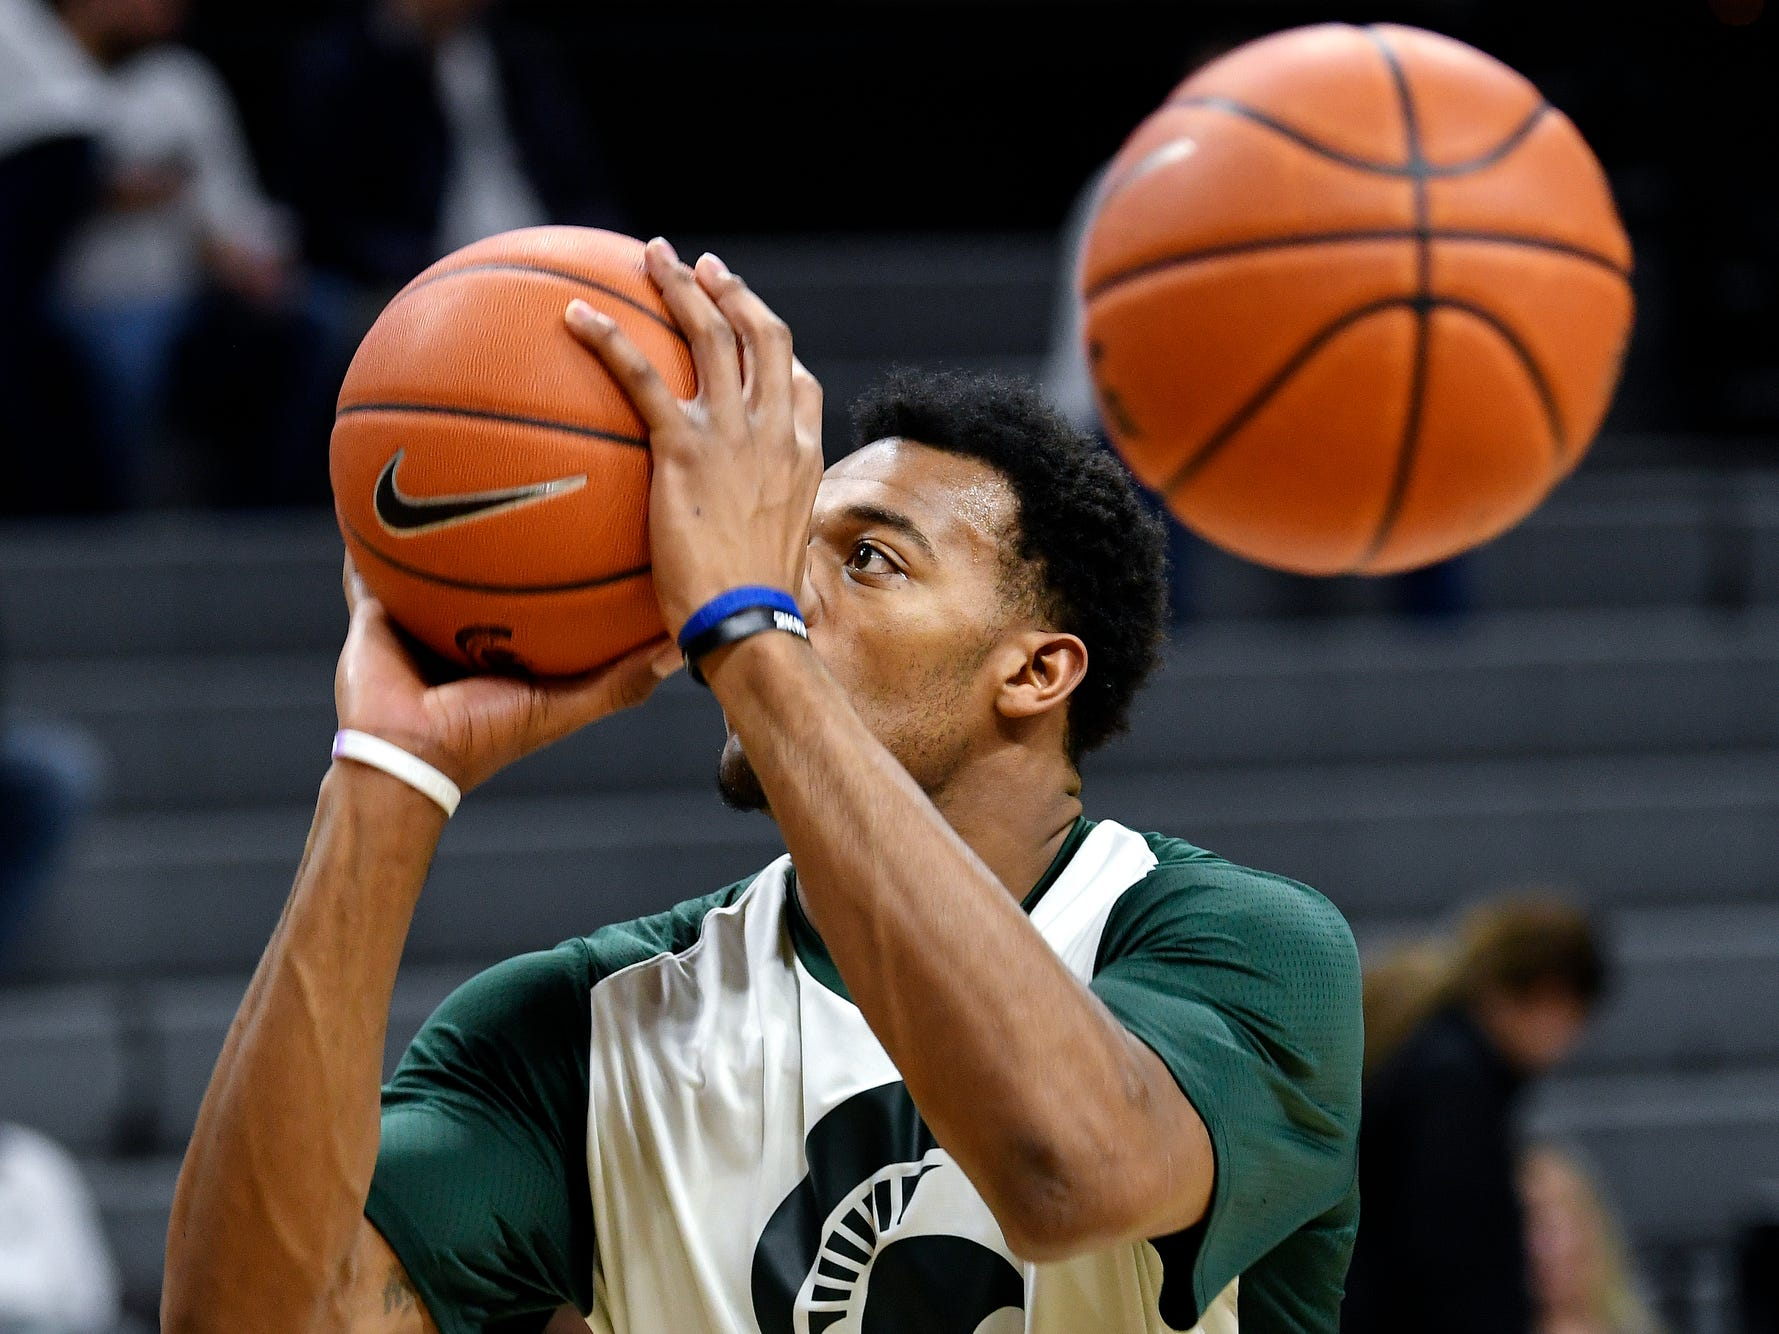 Michigan State's Xavier Tillman shoots a basket as the Spartans warm up before the game against Michigan on Saturday, March 9, 2019, at the Breslin Center in East Lansing.